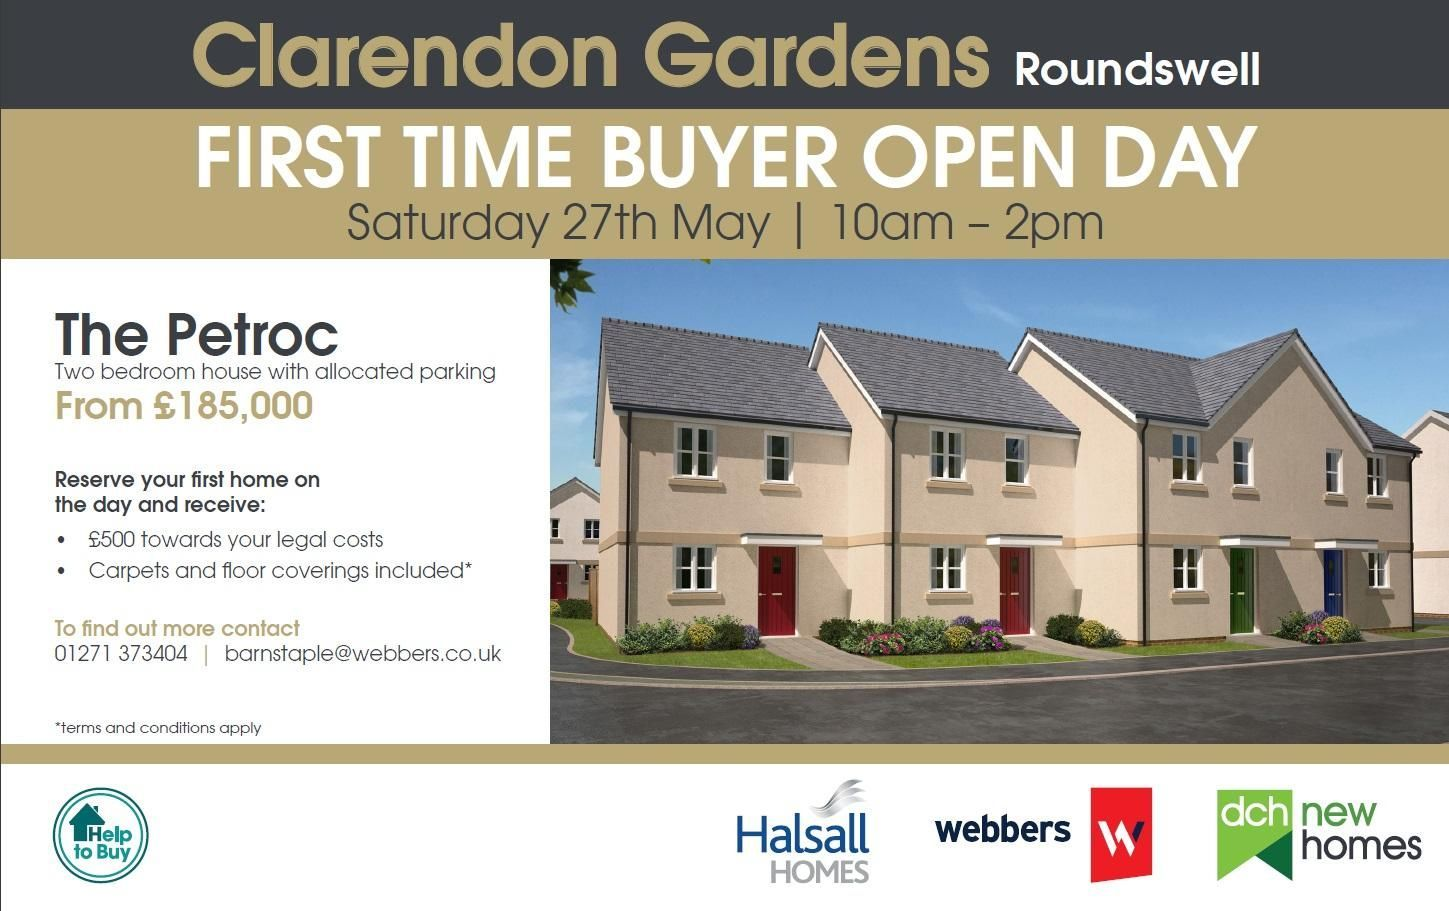 Open House Clarendon Garden, Barnstaple EX31 3FN  :- Saturday 27th May, 2017 10am - 2pm